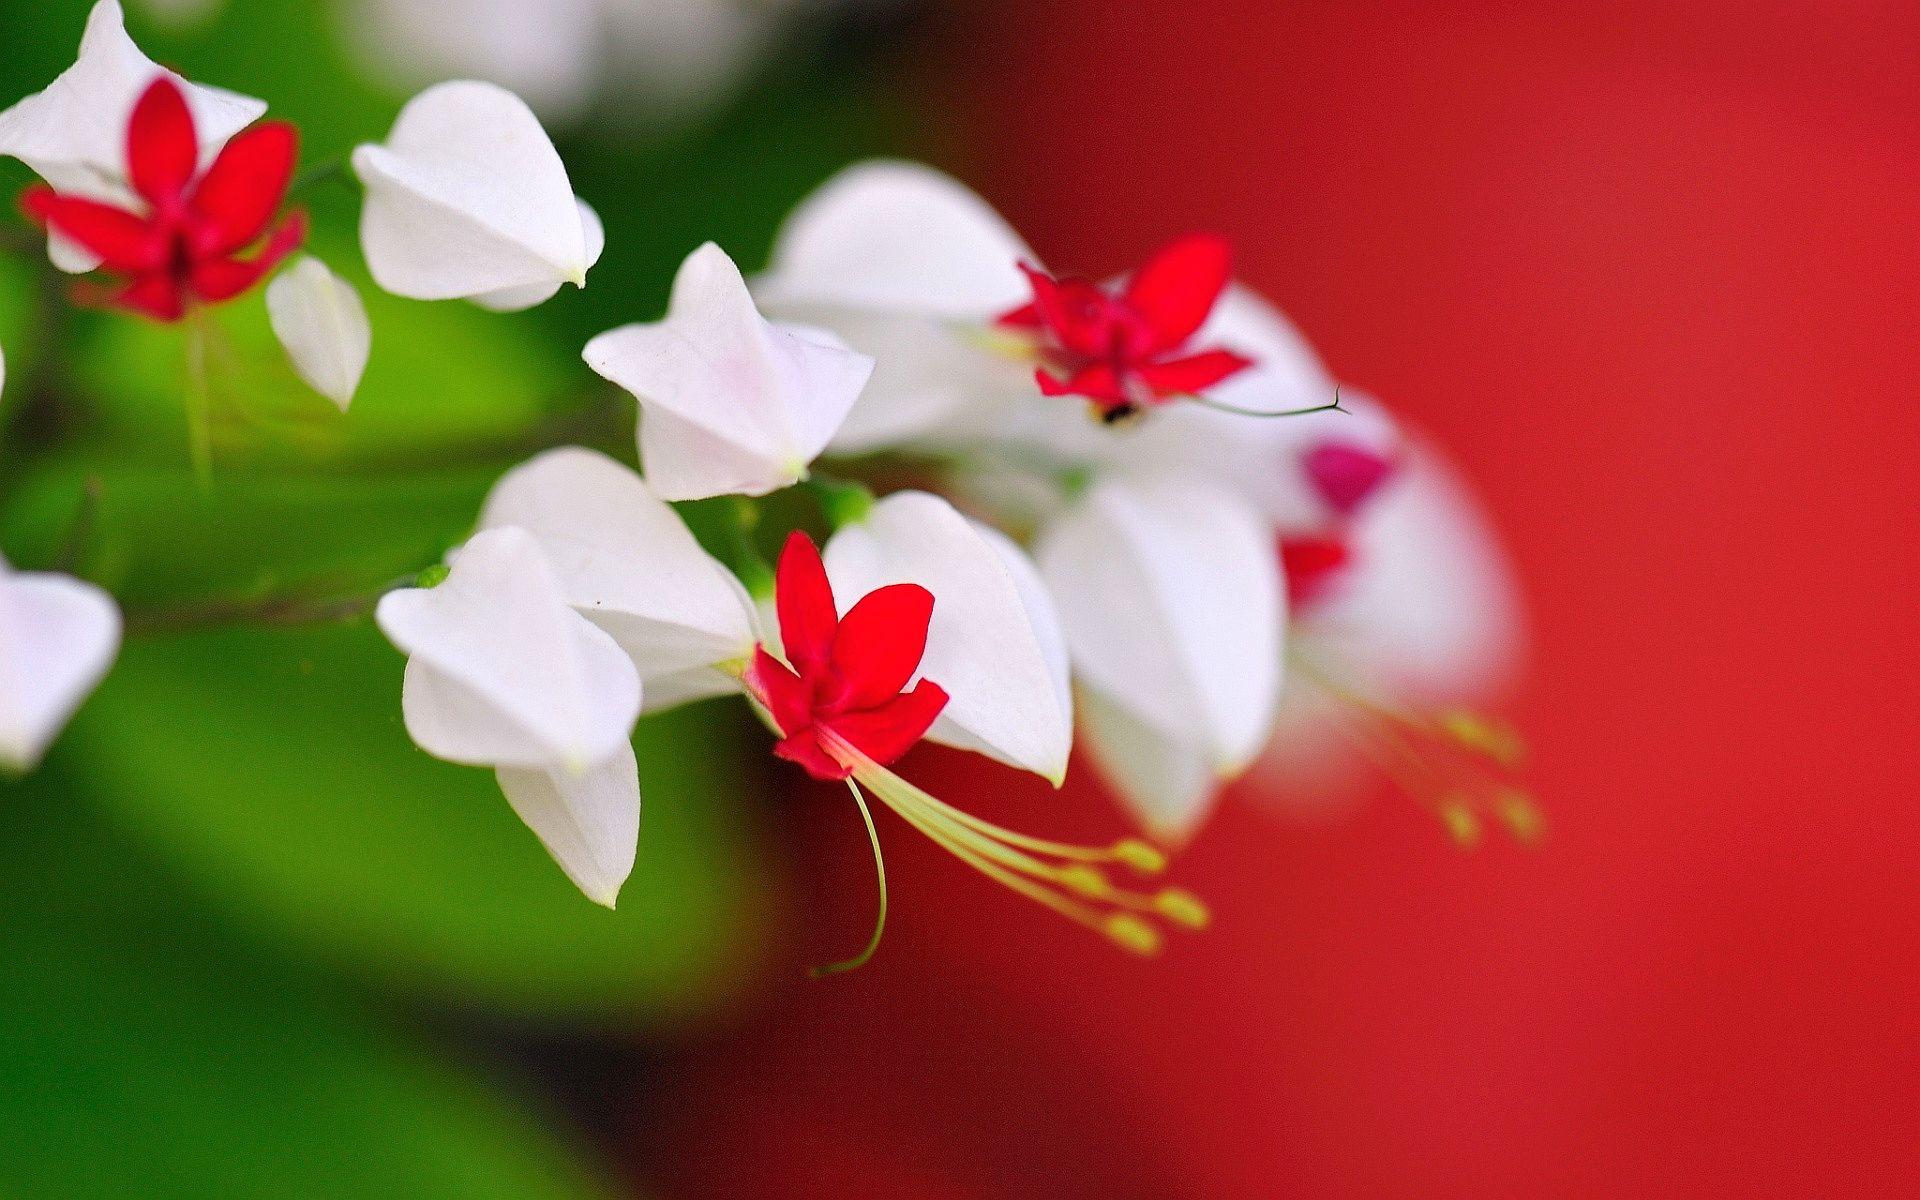 100 types of the most beautiful white flowers for your garden 100 types of the most beautiful white flowers for your garden dhlflorist Images